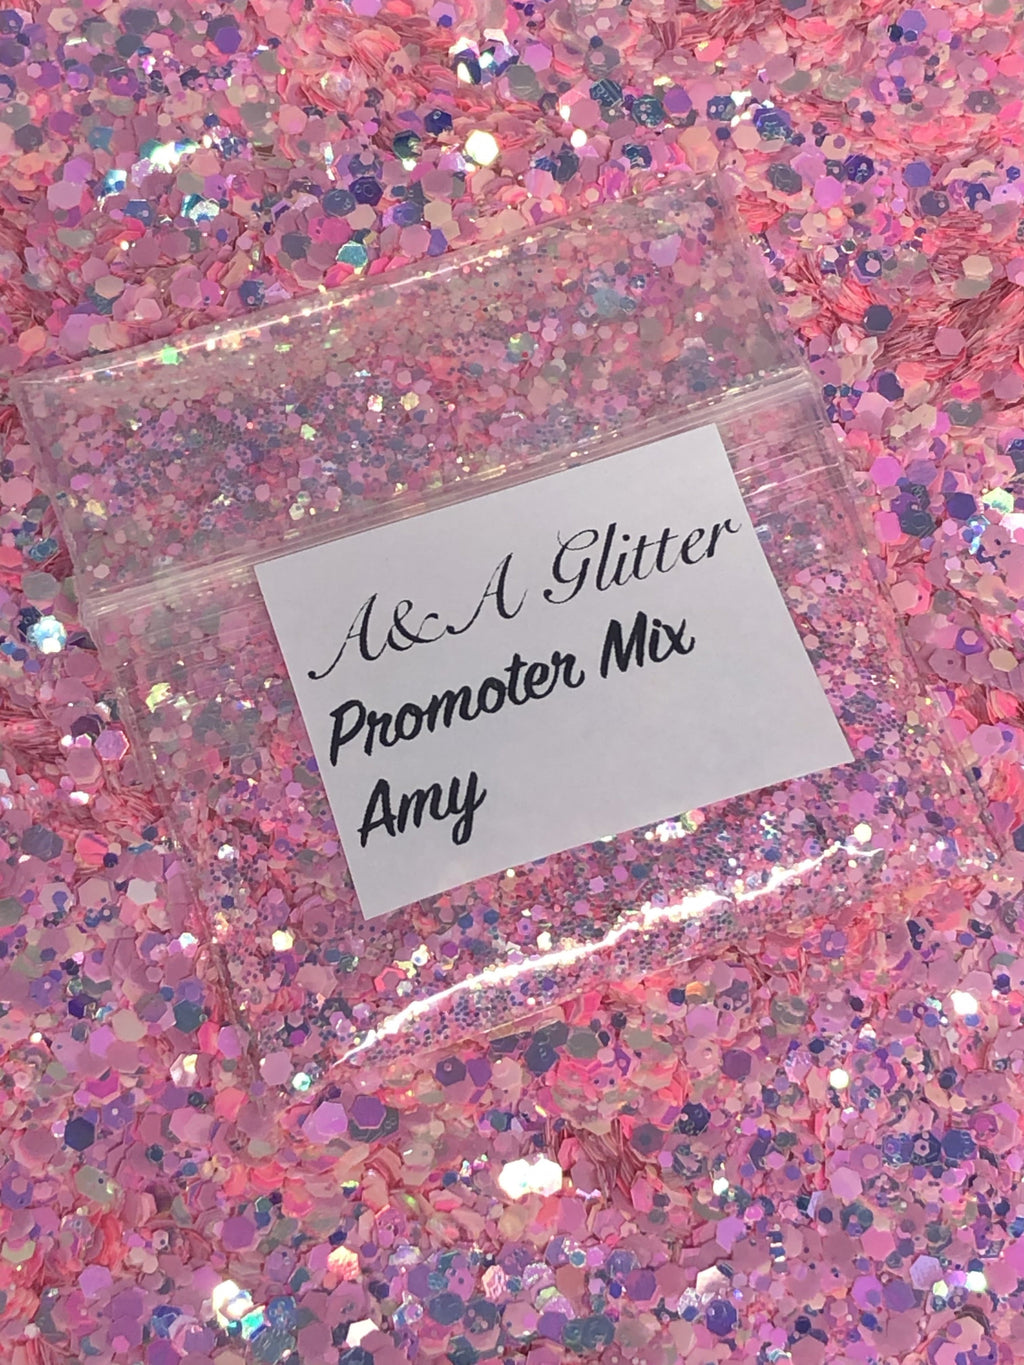 Ambassador Mix - Amy